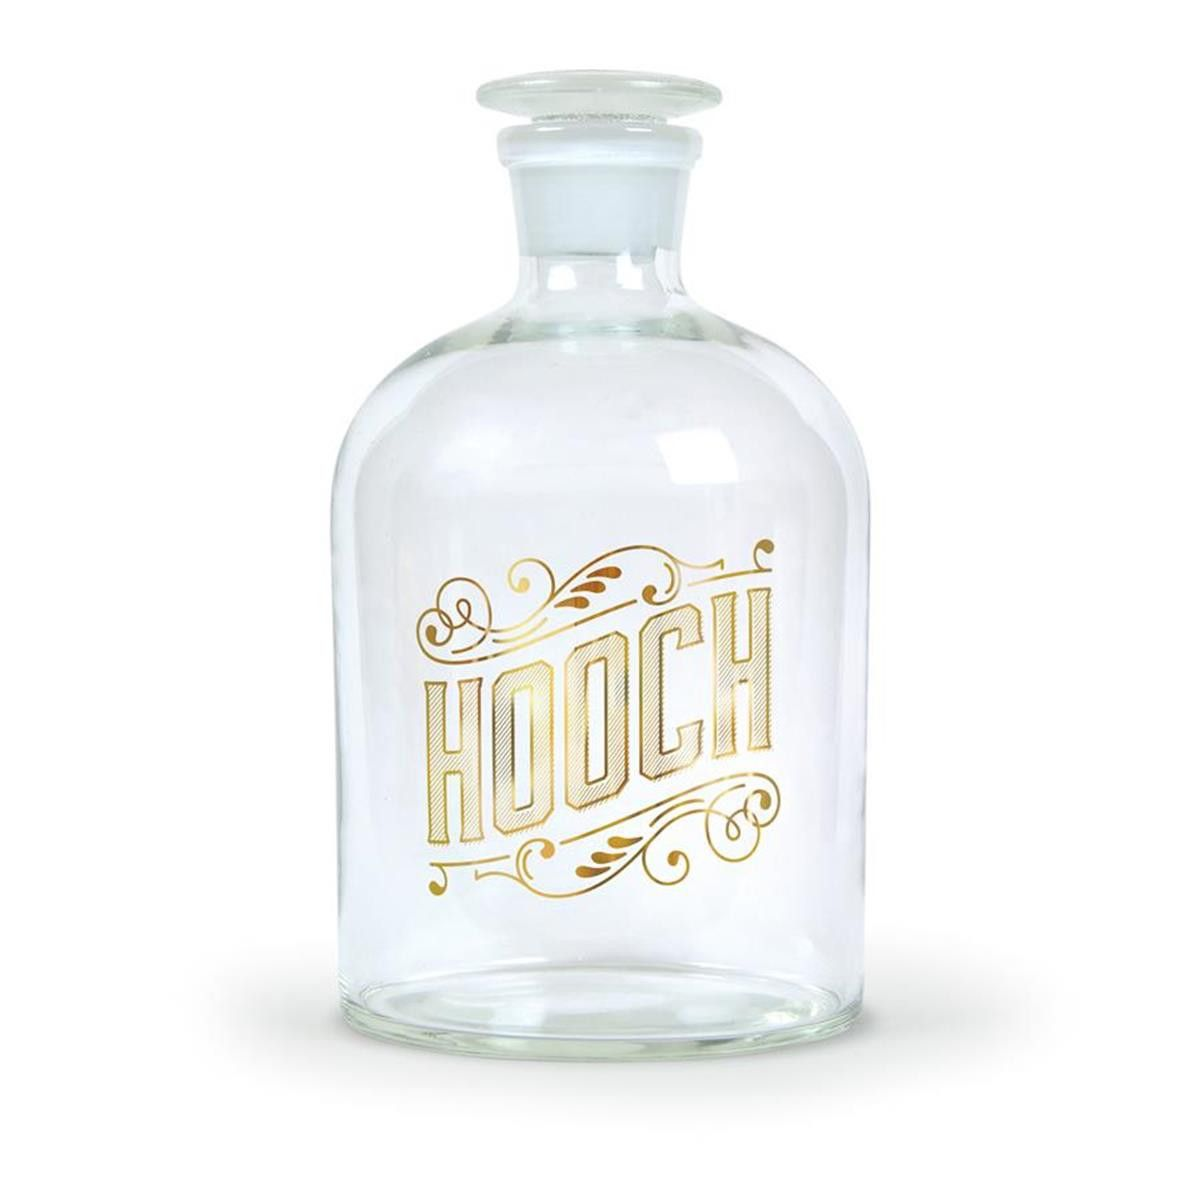 Bottled Up Whiskey Decanter - Hooch - now only $22.00!  #UniqueGifts #UnusualGifts #karmakiss #allgiftythings #YouKnowYouWantIt